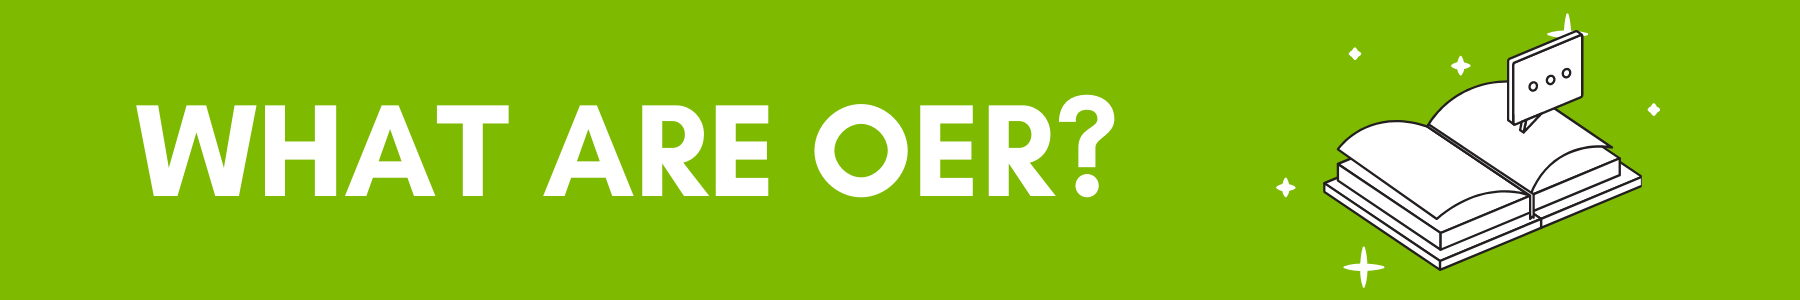 what are oer banner